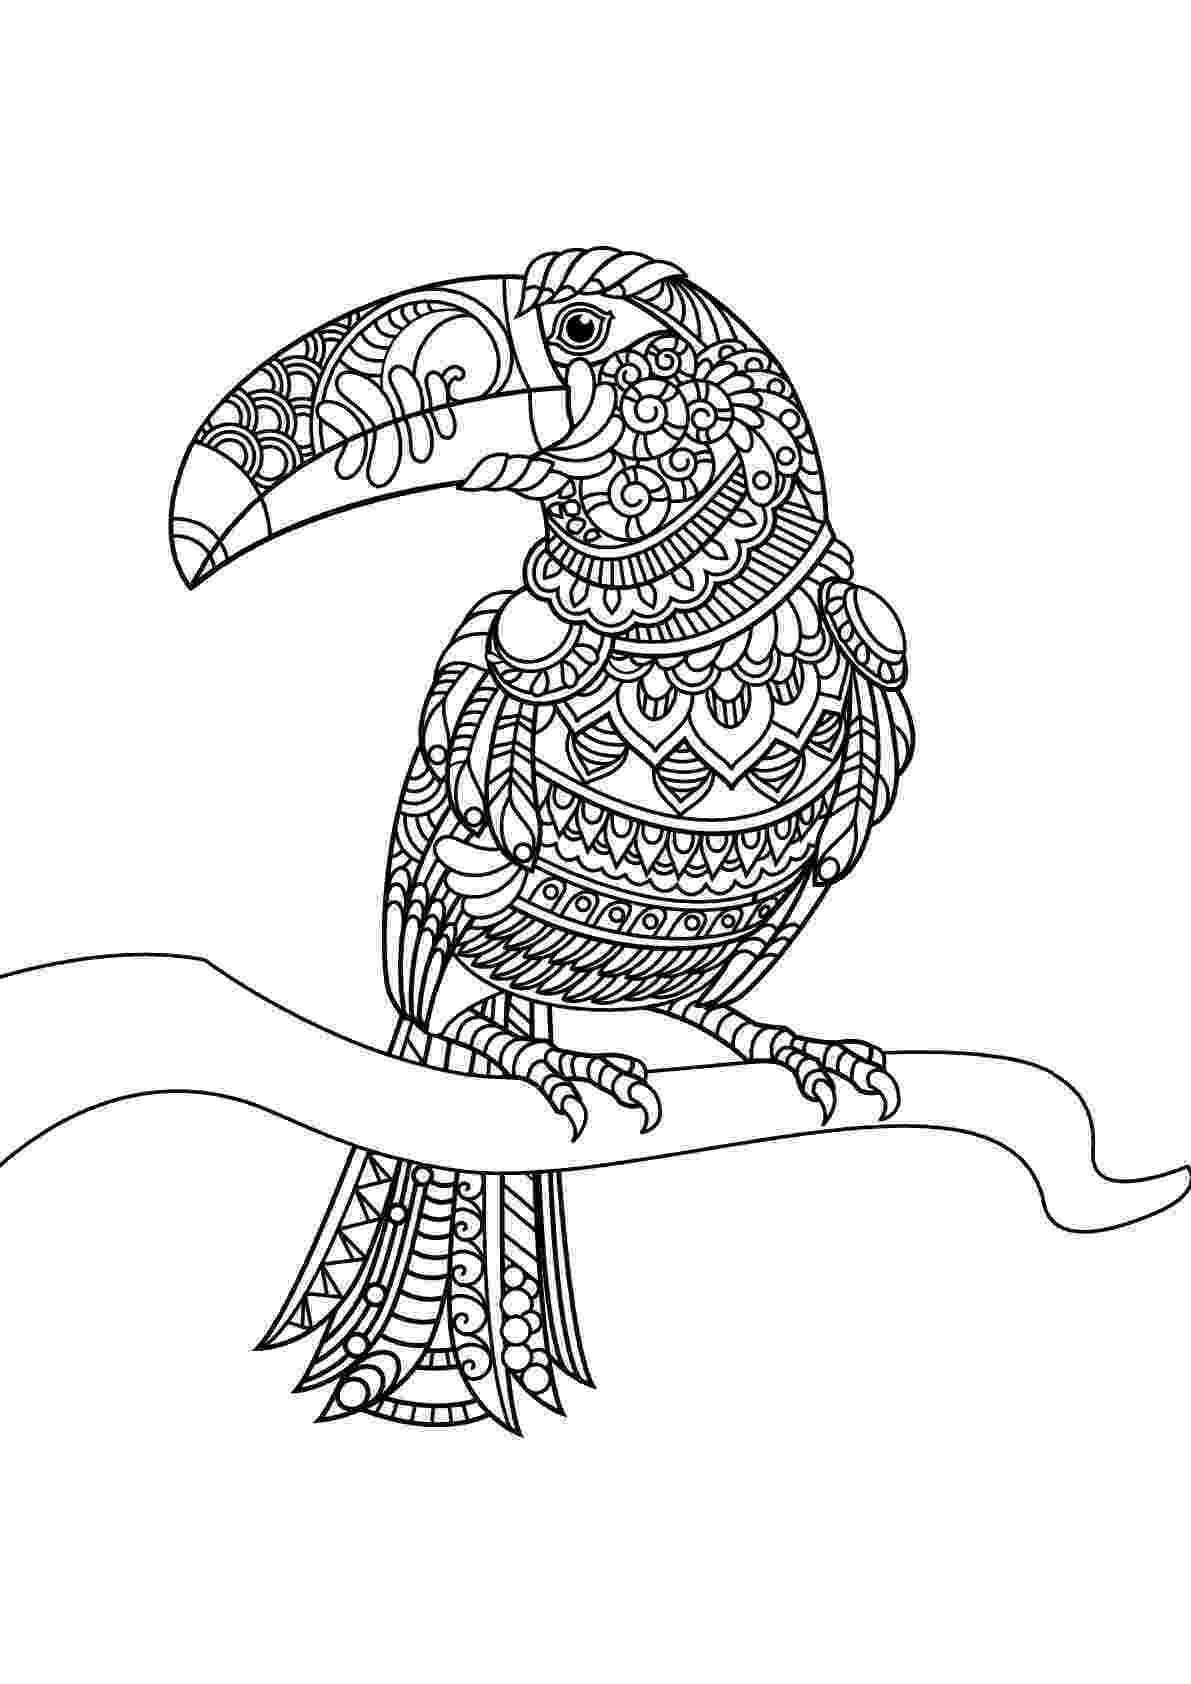 free coloring pages birds bird coloring pages free download on clipartmag coloring pages birds free